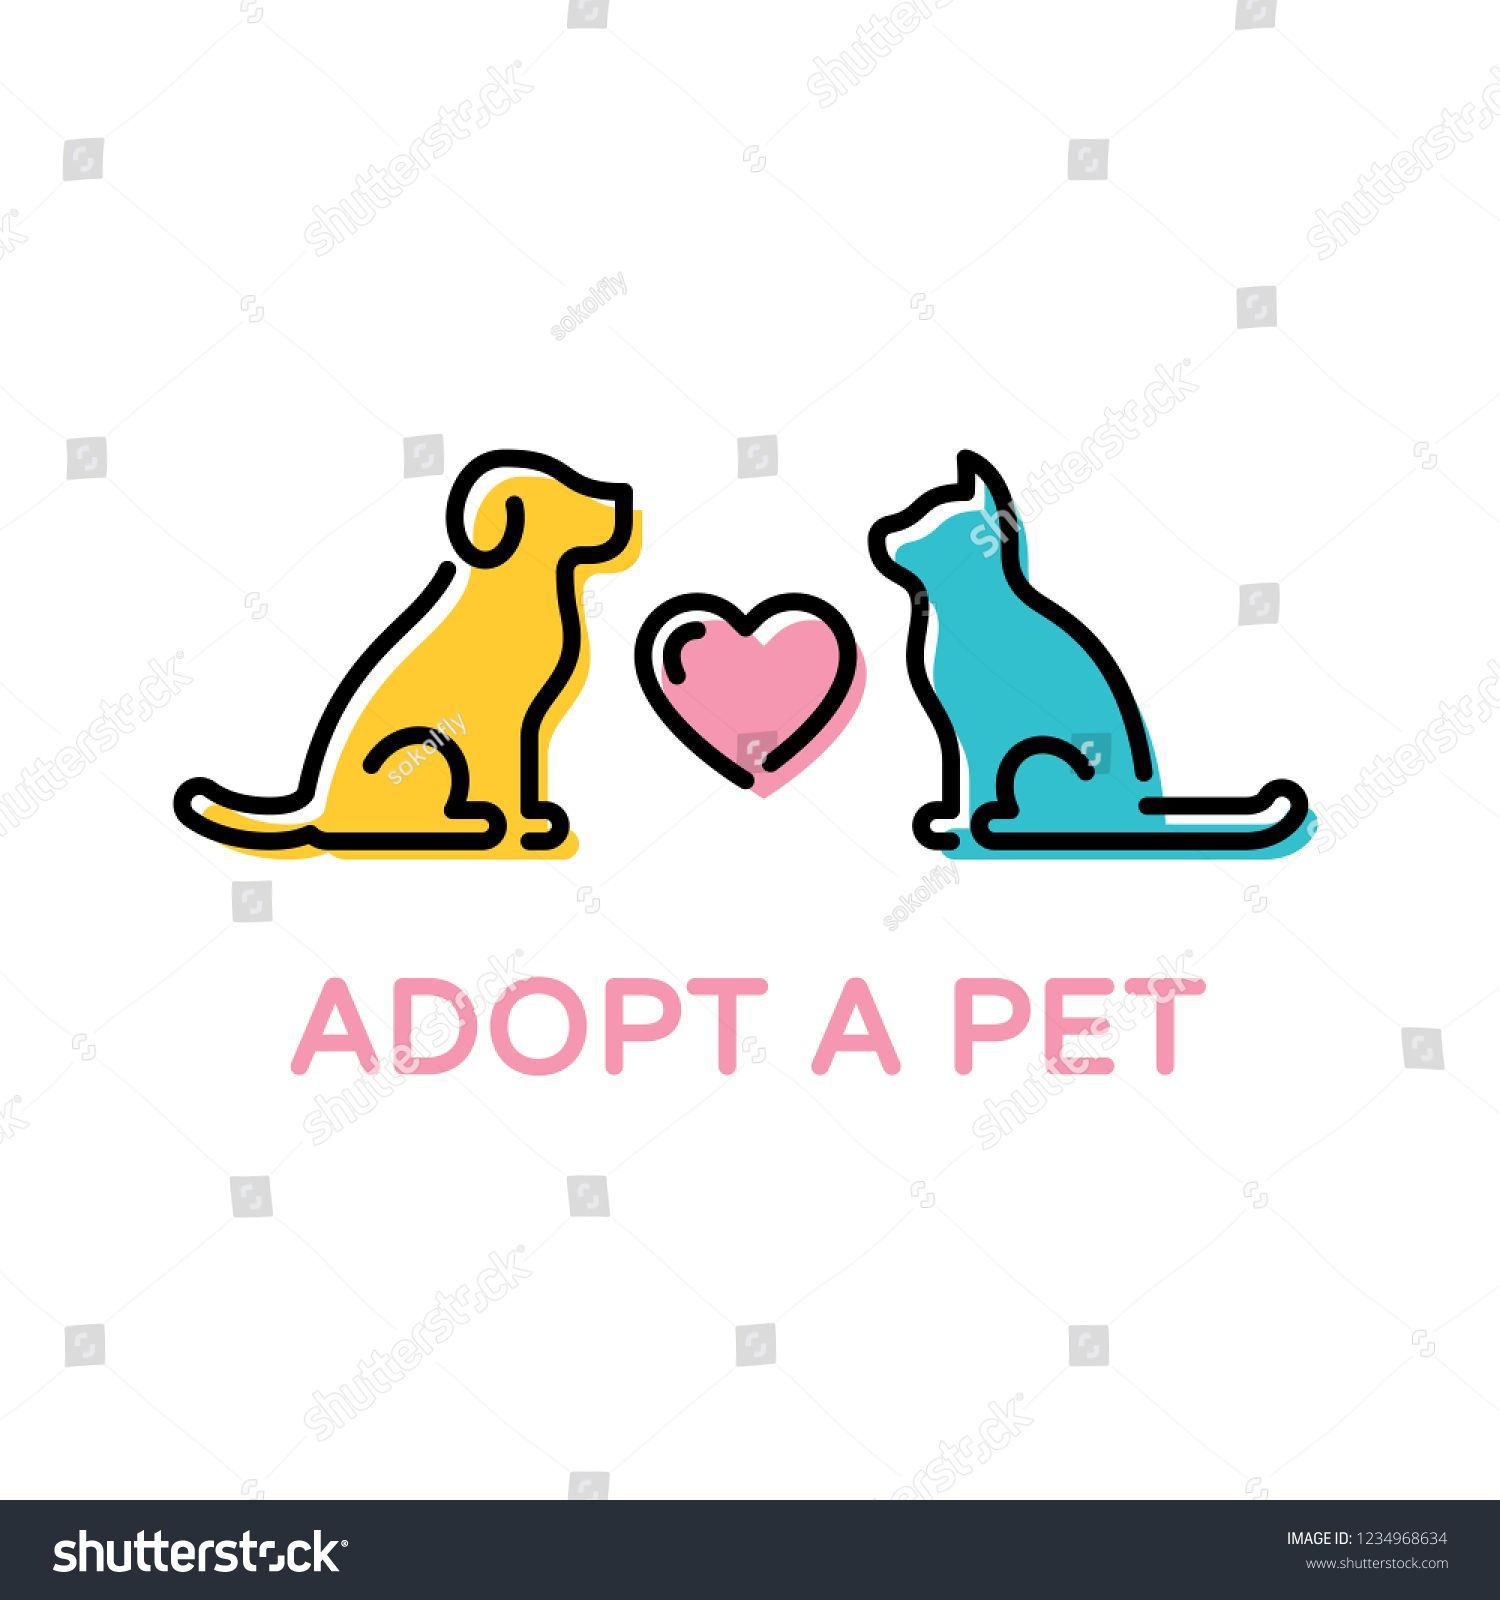 Adopt A Pet Design Poster With Dog And Cat Vector Dona T Buy Banner Color Linear Pictogram Banner Showing Anim With Images Icon Illustration Animal Design Poster Design